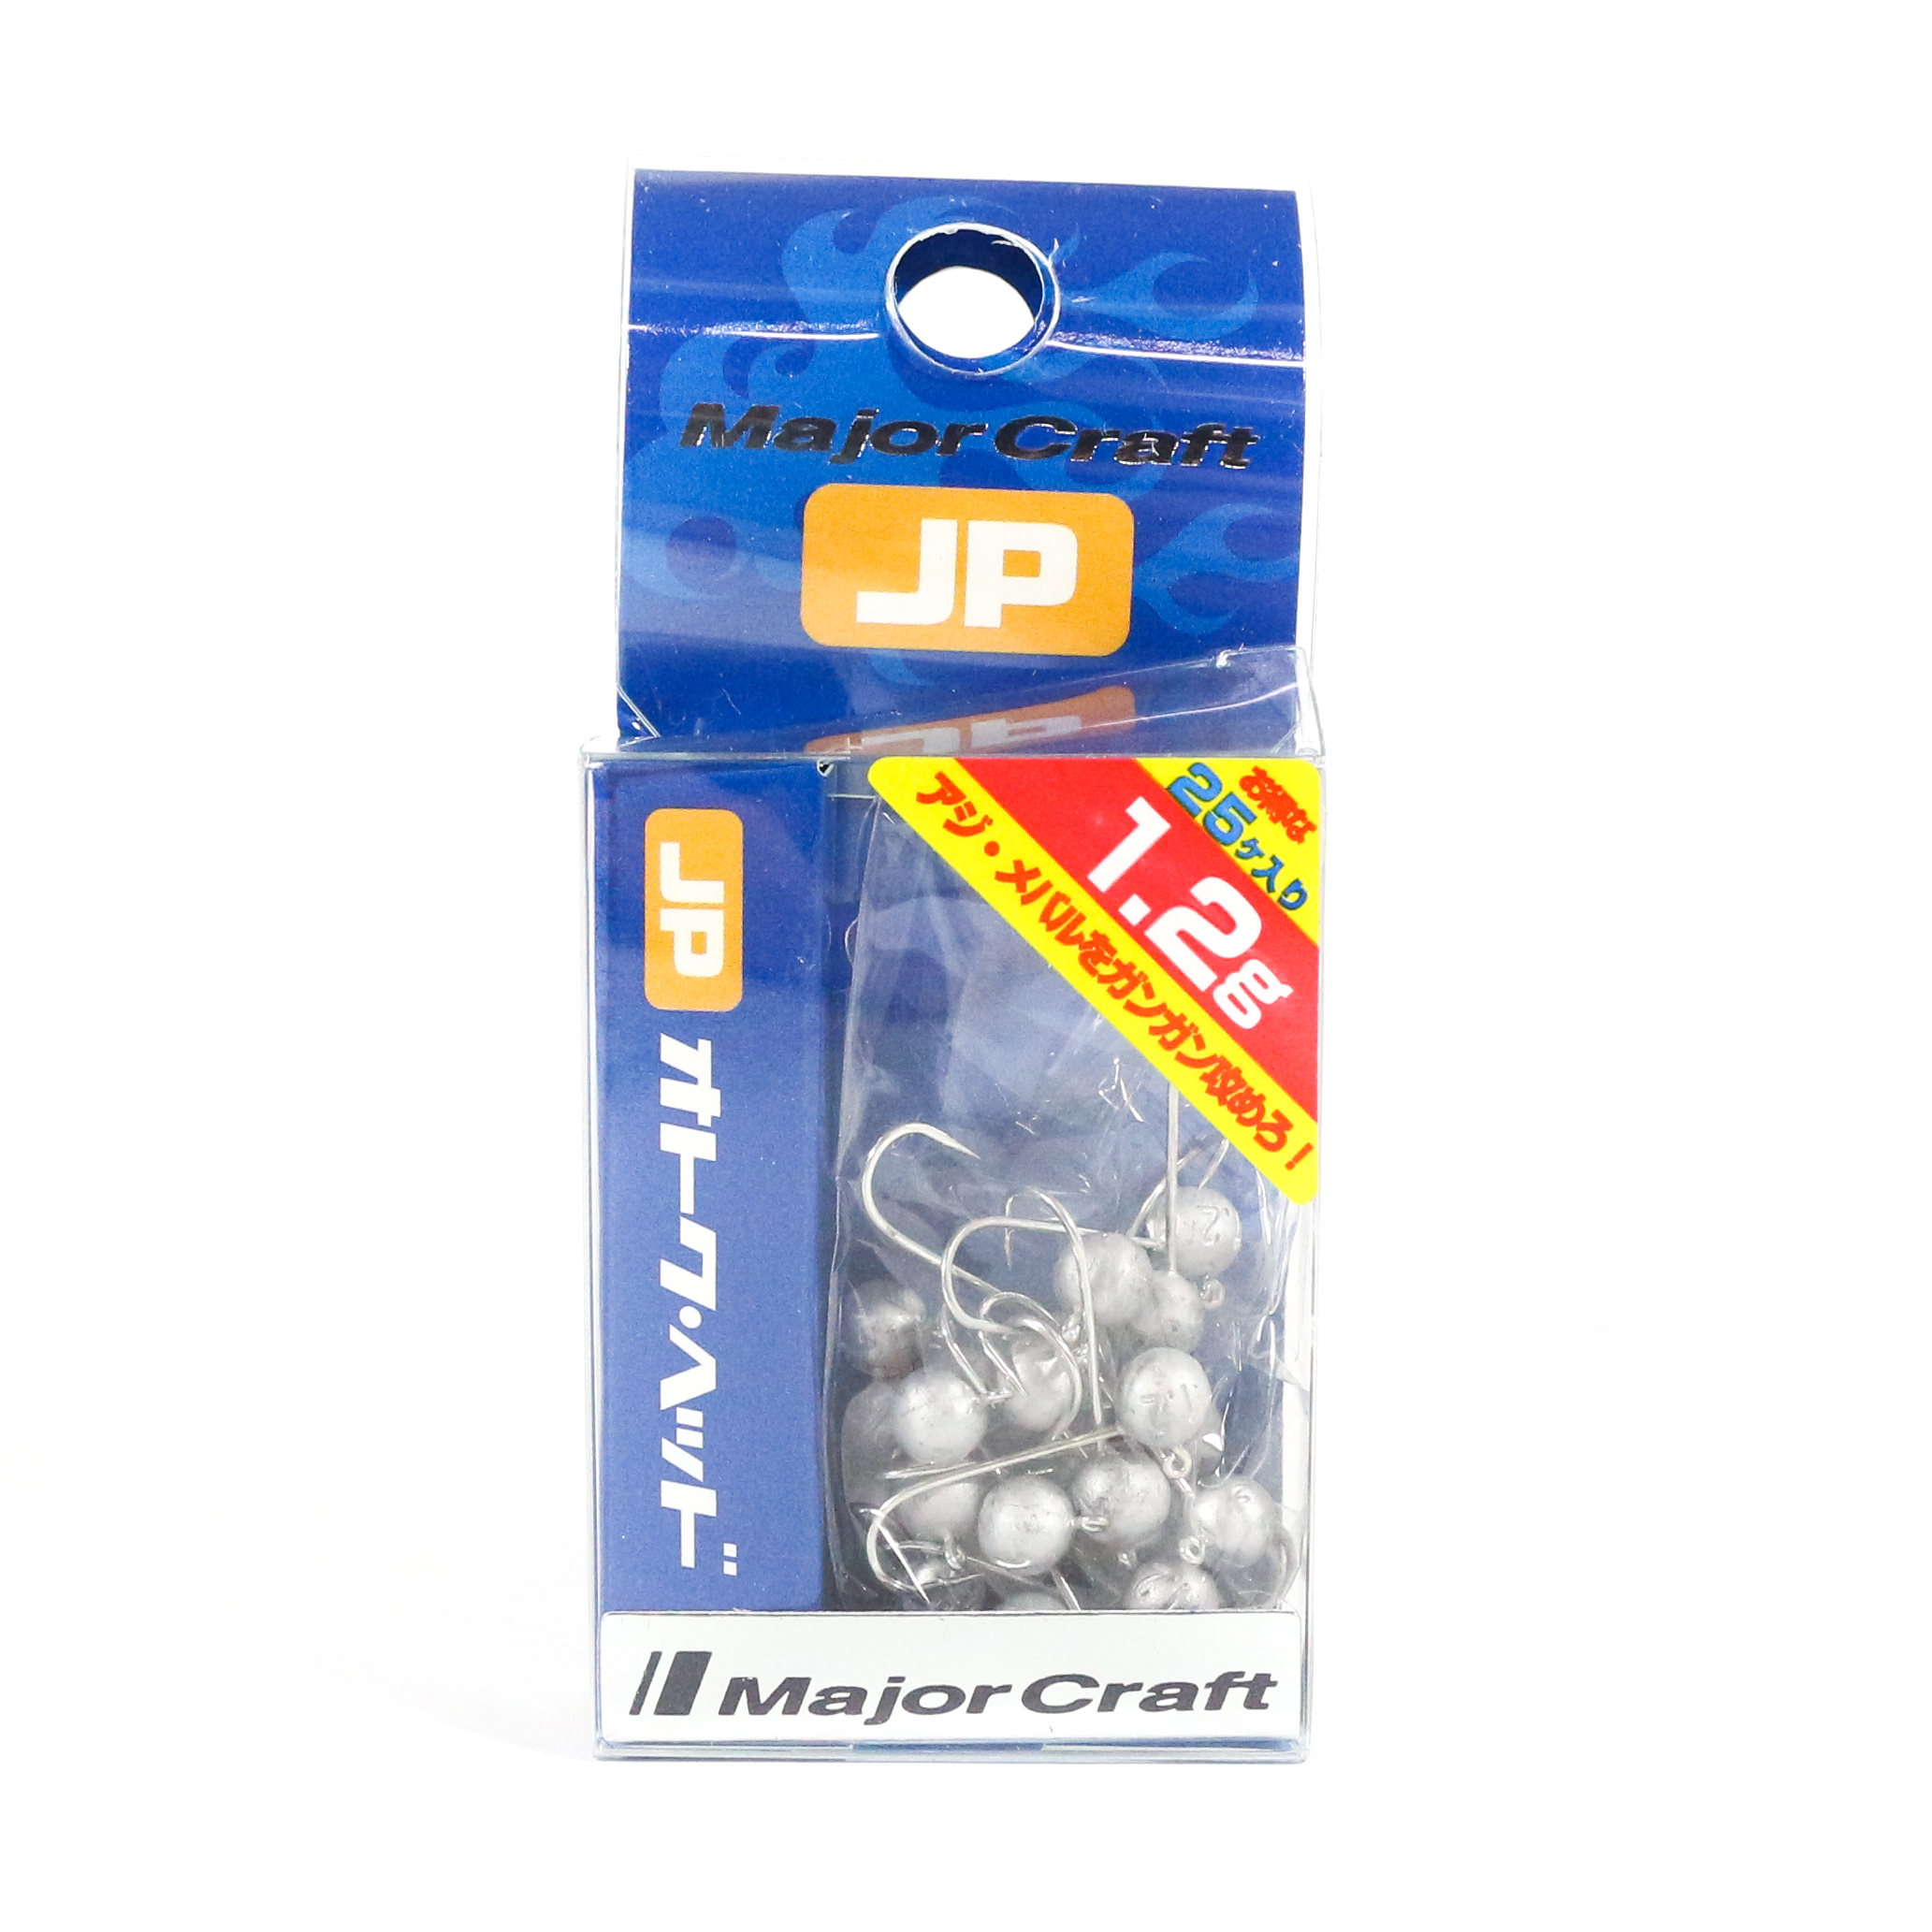 Major Craft Jig Head OTHD-1.2 grams Size 8 25 piece pack (6511)